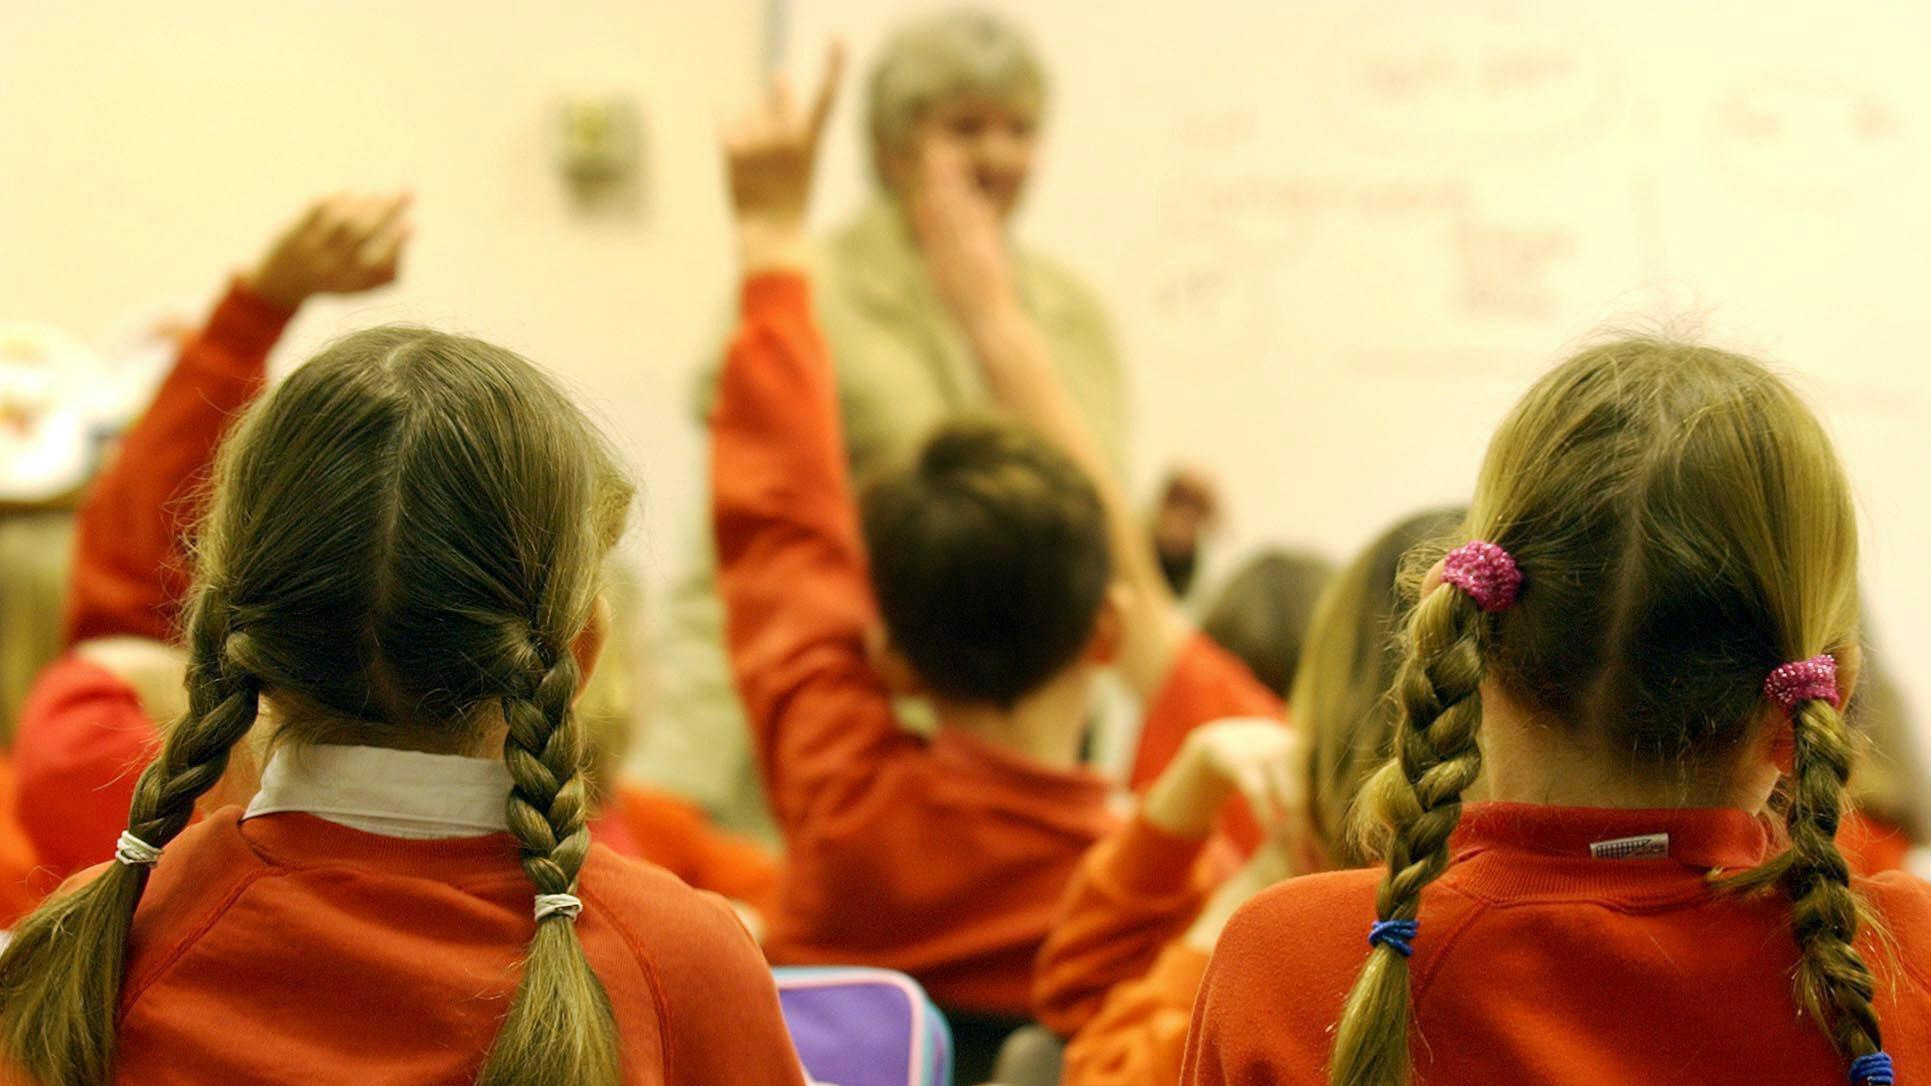 Figures Show Mental Health Treatment For Under 11s Has Jumped Dramatically